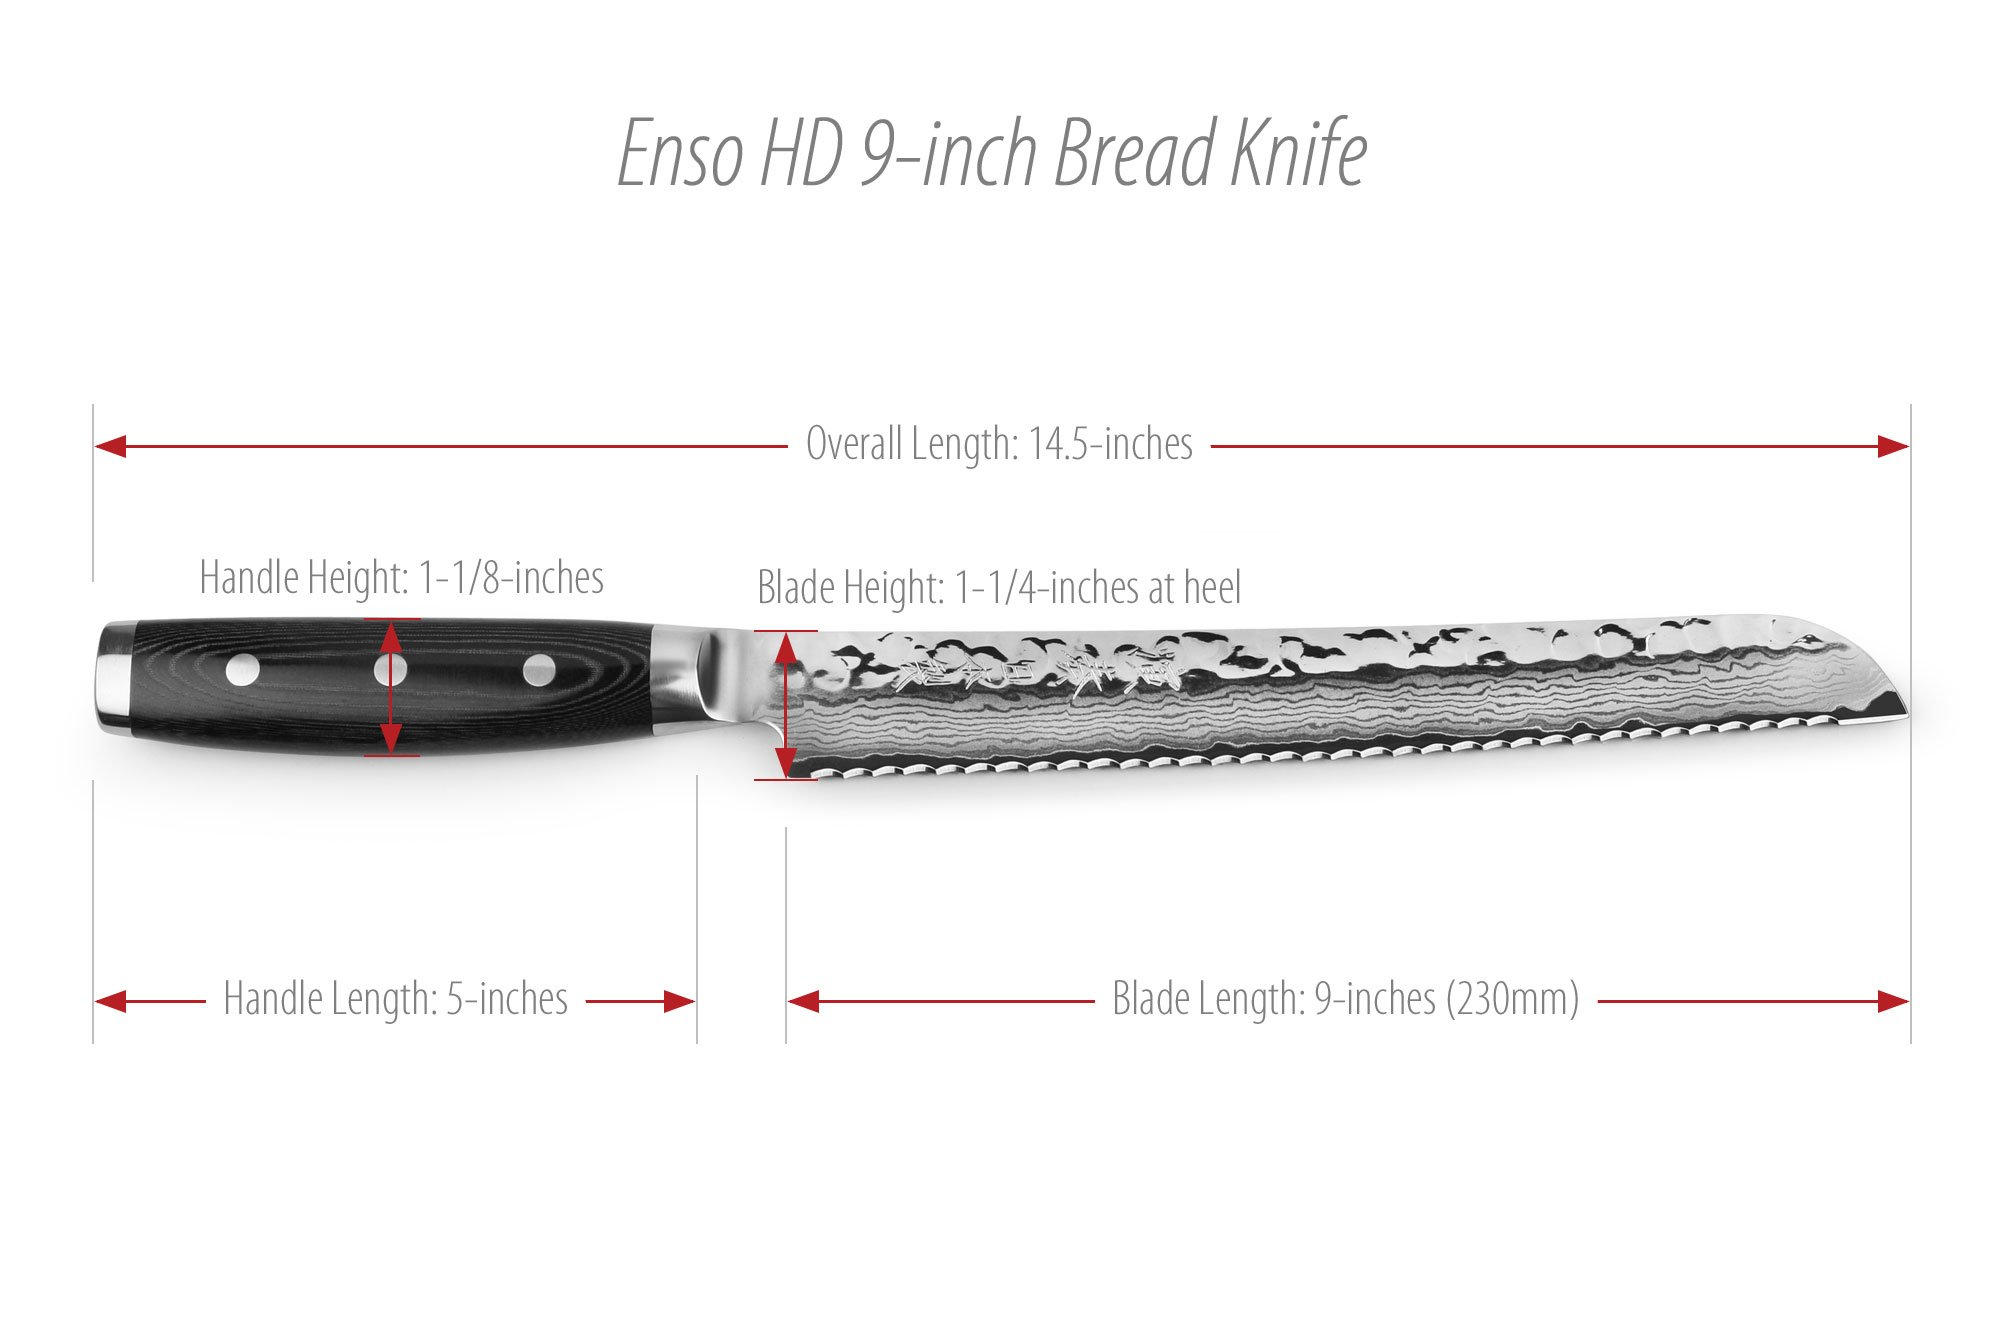 "Enso HD 9"" Bread Knife - Made in Japan - VG10 Hammered Damascus Stainless Steel Serrated Slicing Knife 2 Serrated slicing knife ideal for bread and other foods with a crusty/tough exterior and soft interior; Will easily slice without crushing the inside Japanese VG10 steel cutting core for excellent edge retention; Rockwell Hardness 61 37-layer stainless Damascus blades with hammered (tsuchime) finish"